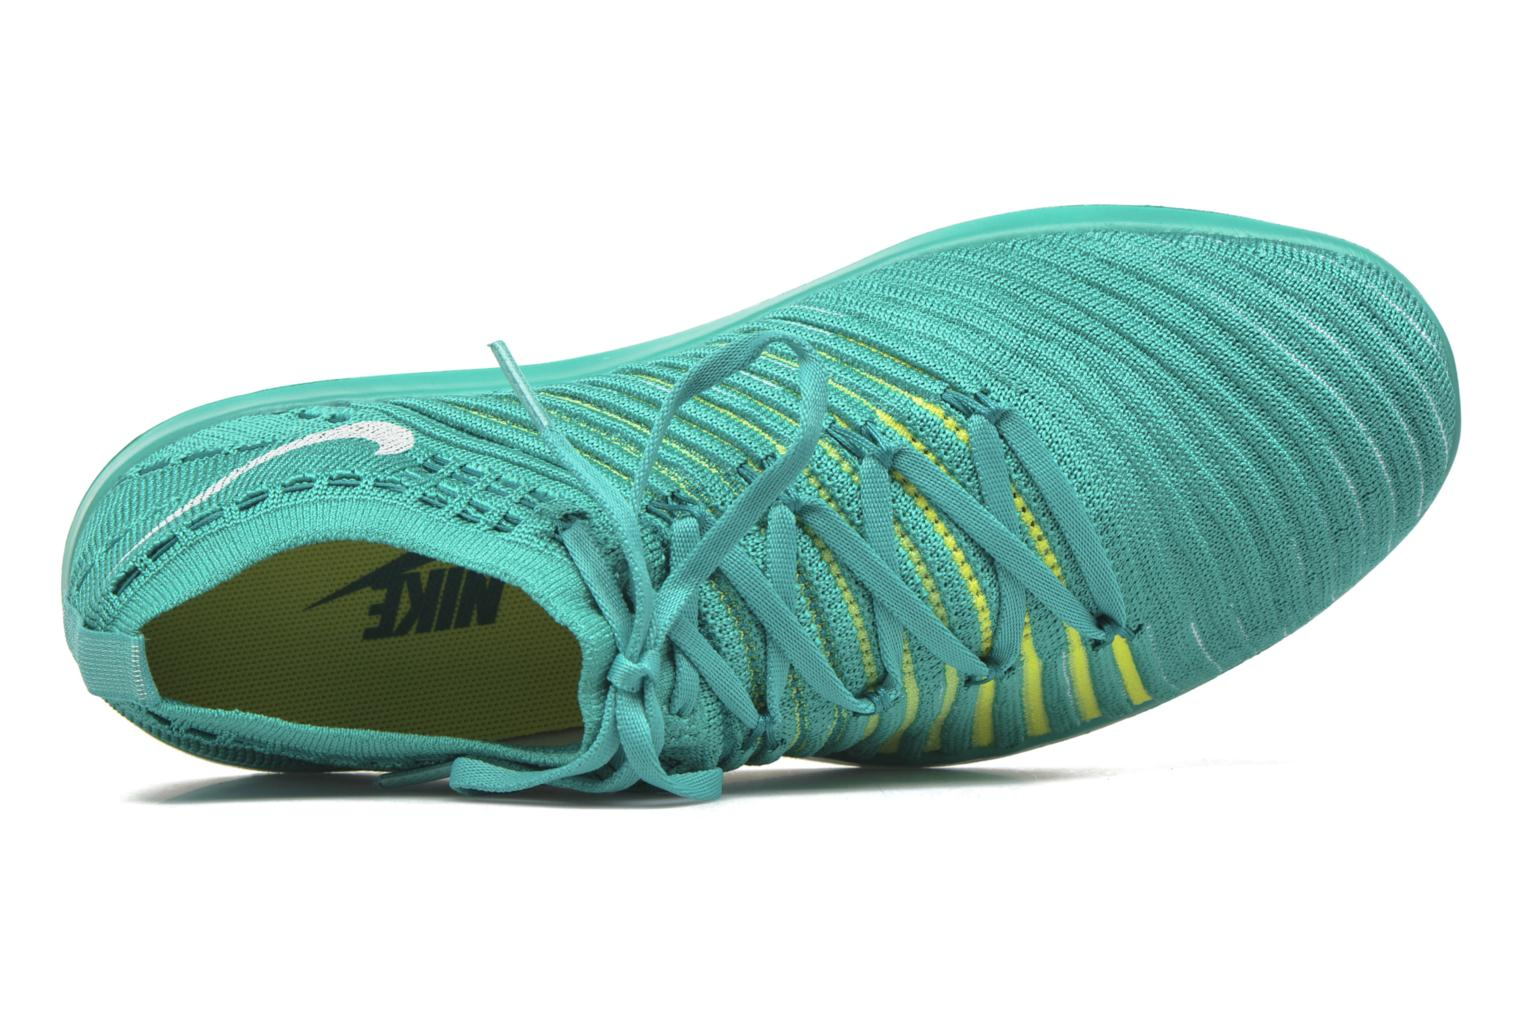 Wm Nike Free Transform Flyknit Clear Jade/White-R Tl-Vltg Grn